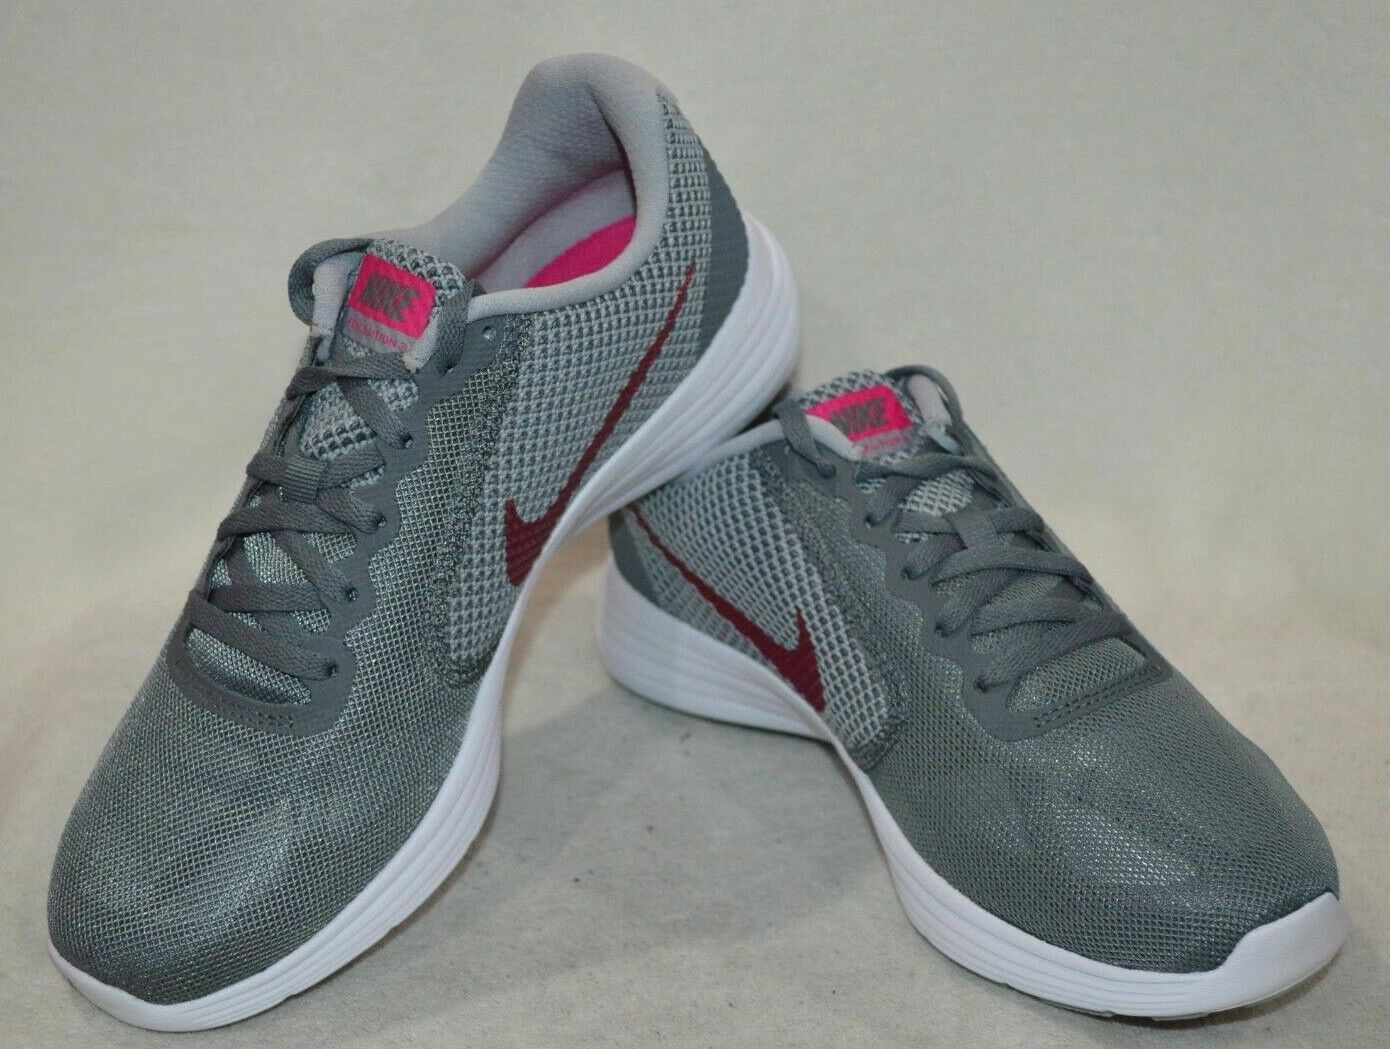 2431f70ca61ad Nike Revolution Cool Grey Pink Women s shoes-Asst Sizes NWB 819303-022  Running 3 ondszr8380-Women s Trainers